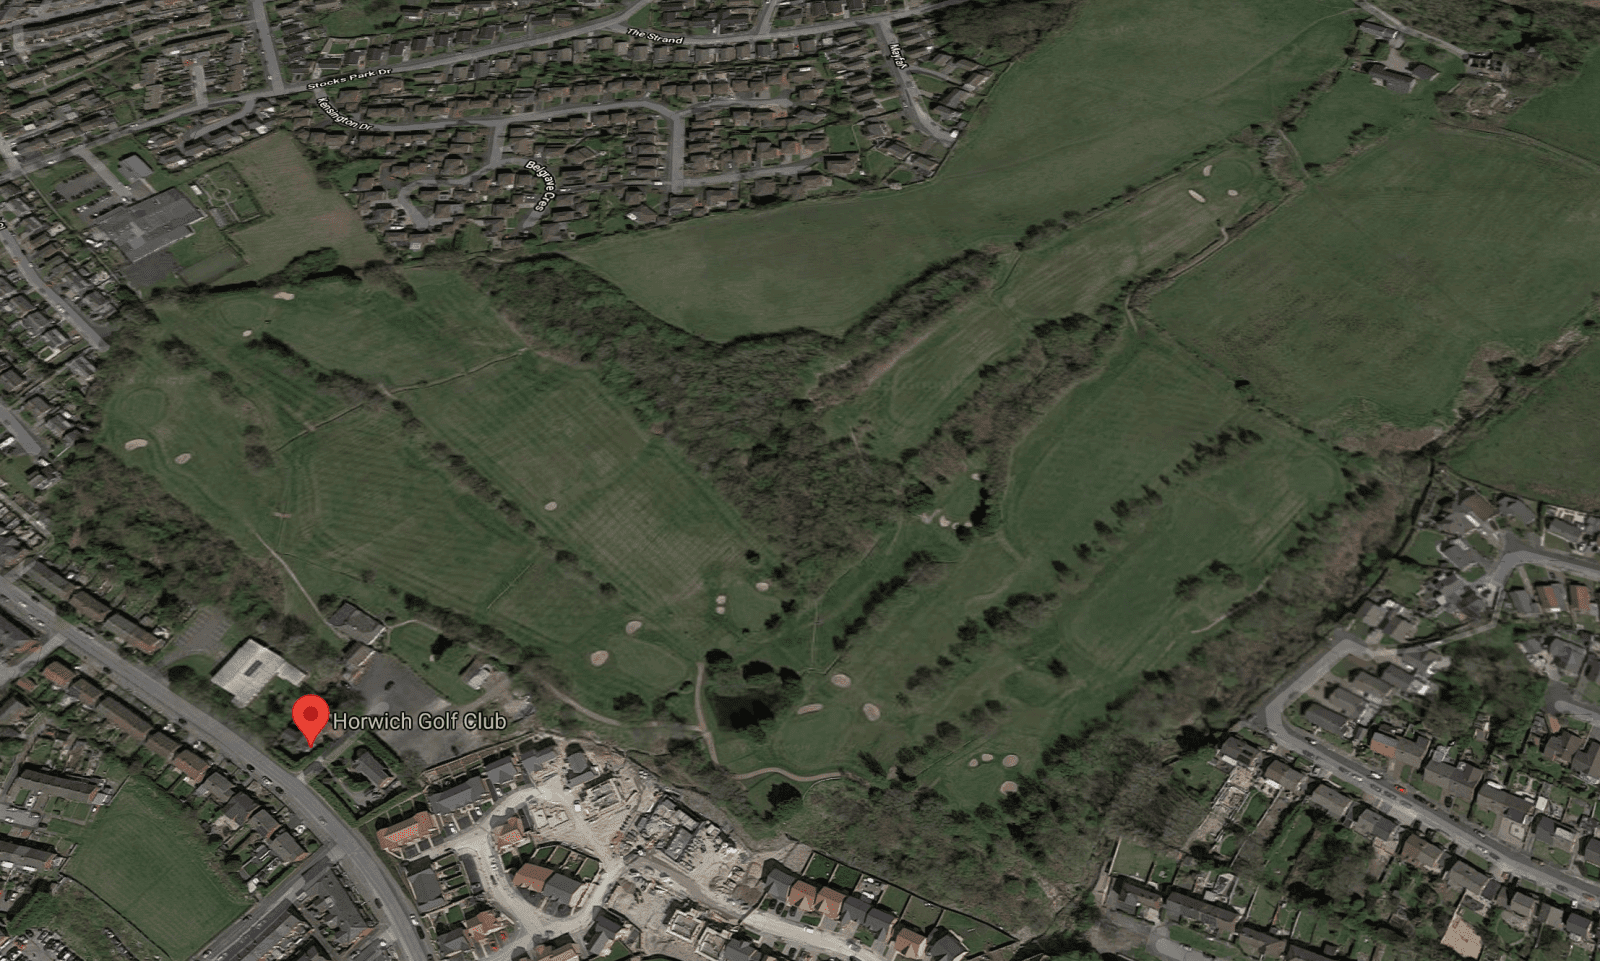 Controversial plans to build 276 homes on Horwich Golf Club in Bolton approved, The Manc